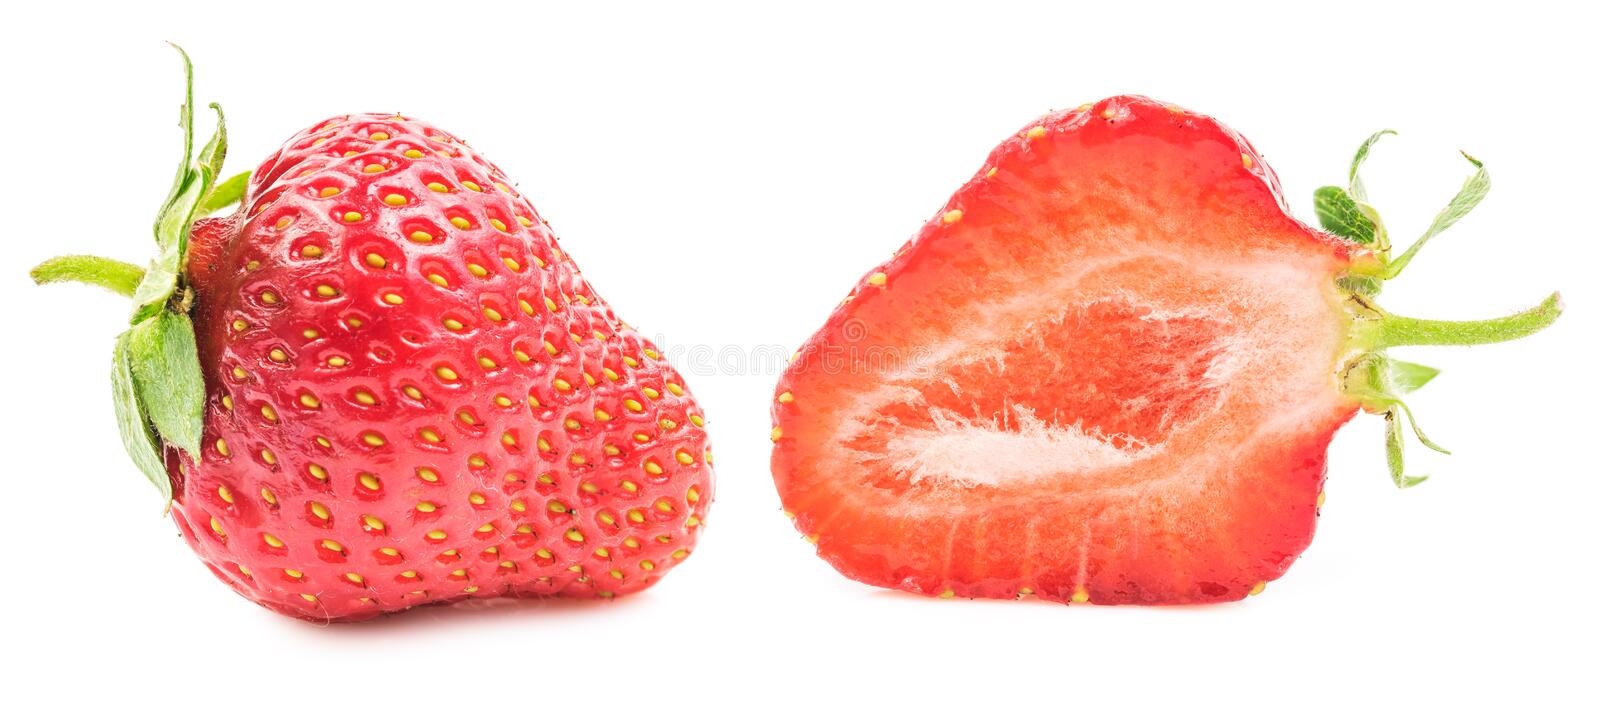 Cut and whole Strawberry Isolated stock image